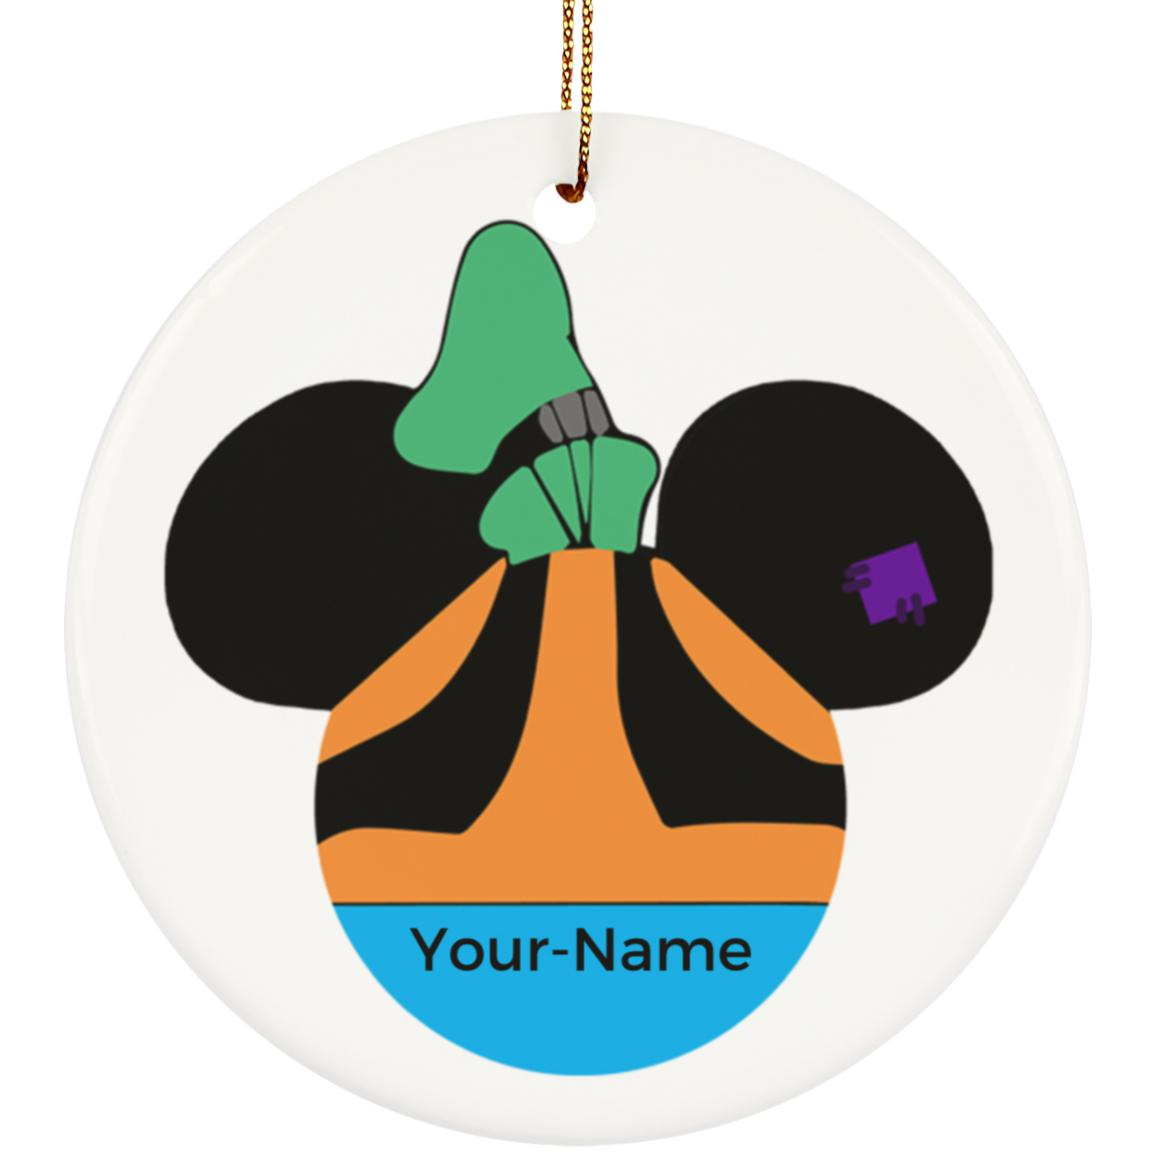 Goofy Ceramic Circle Ornament - Personalized